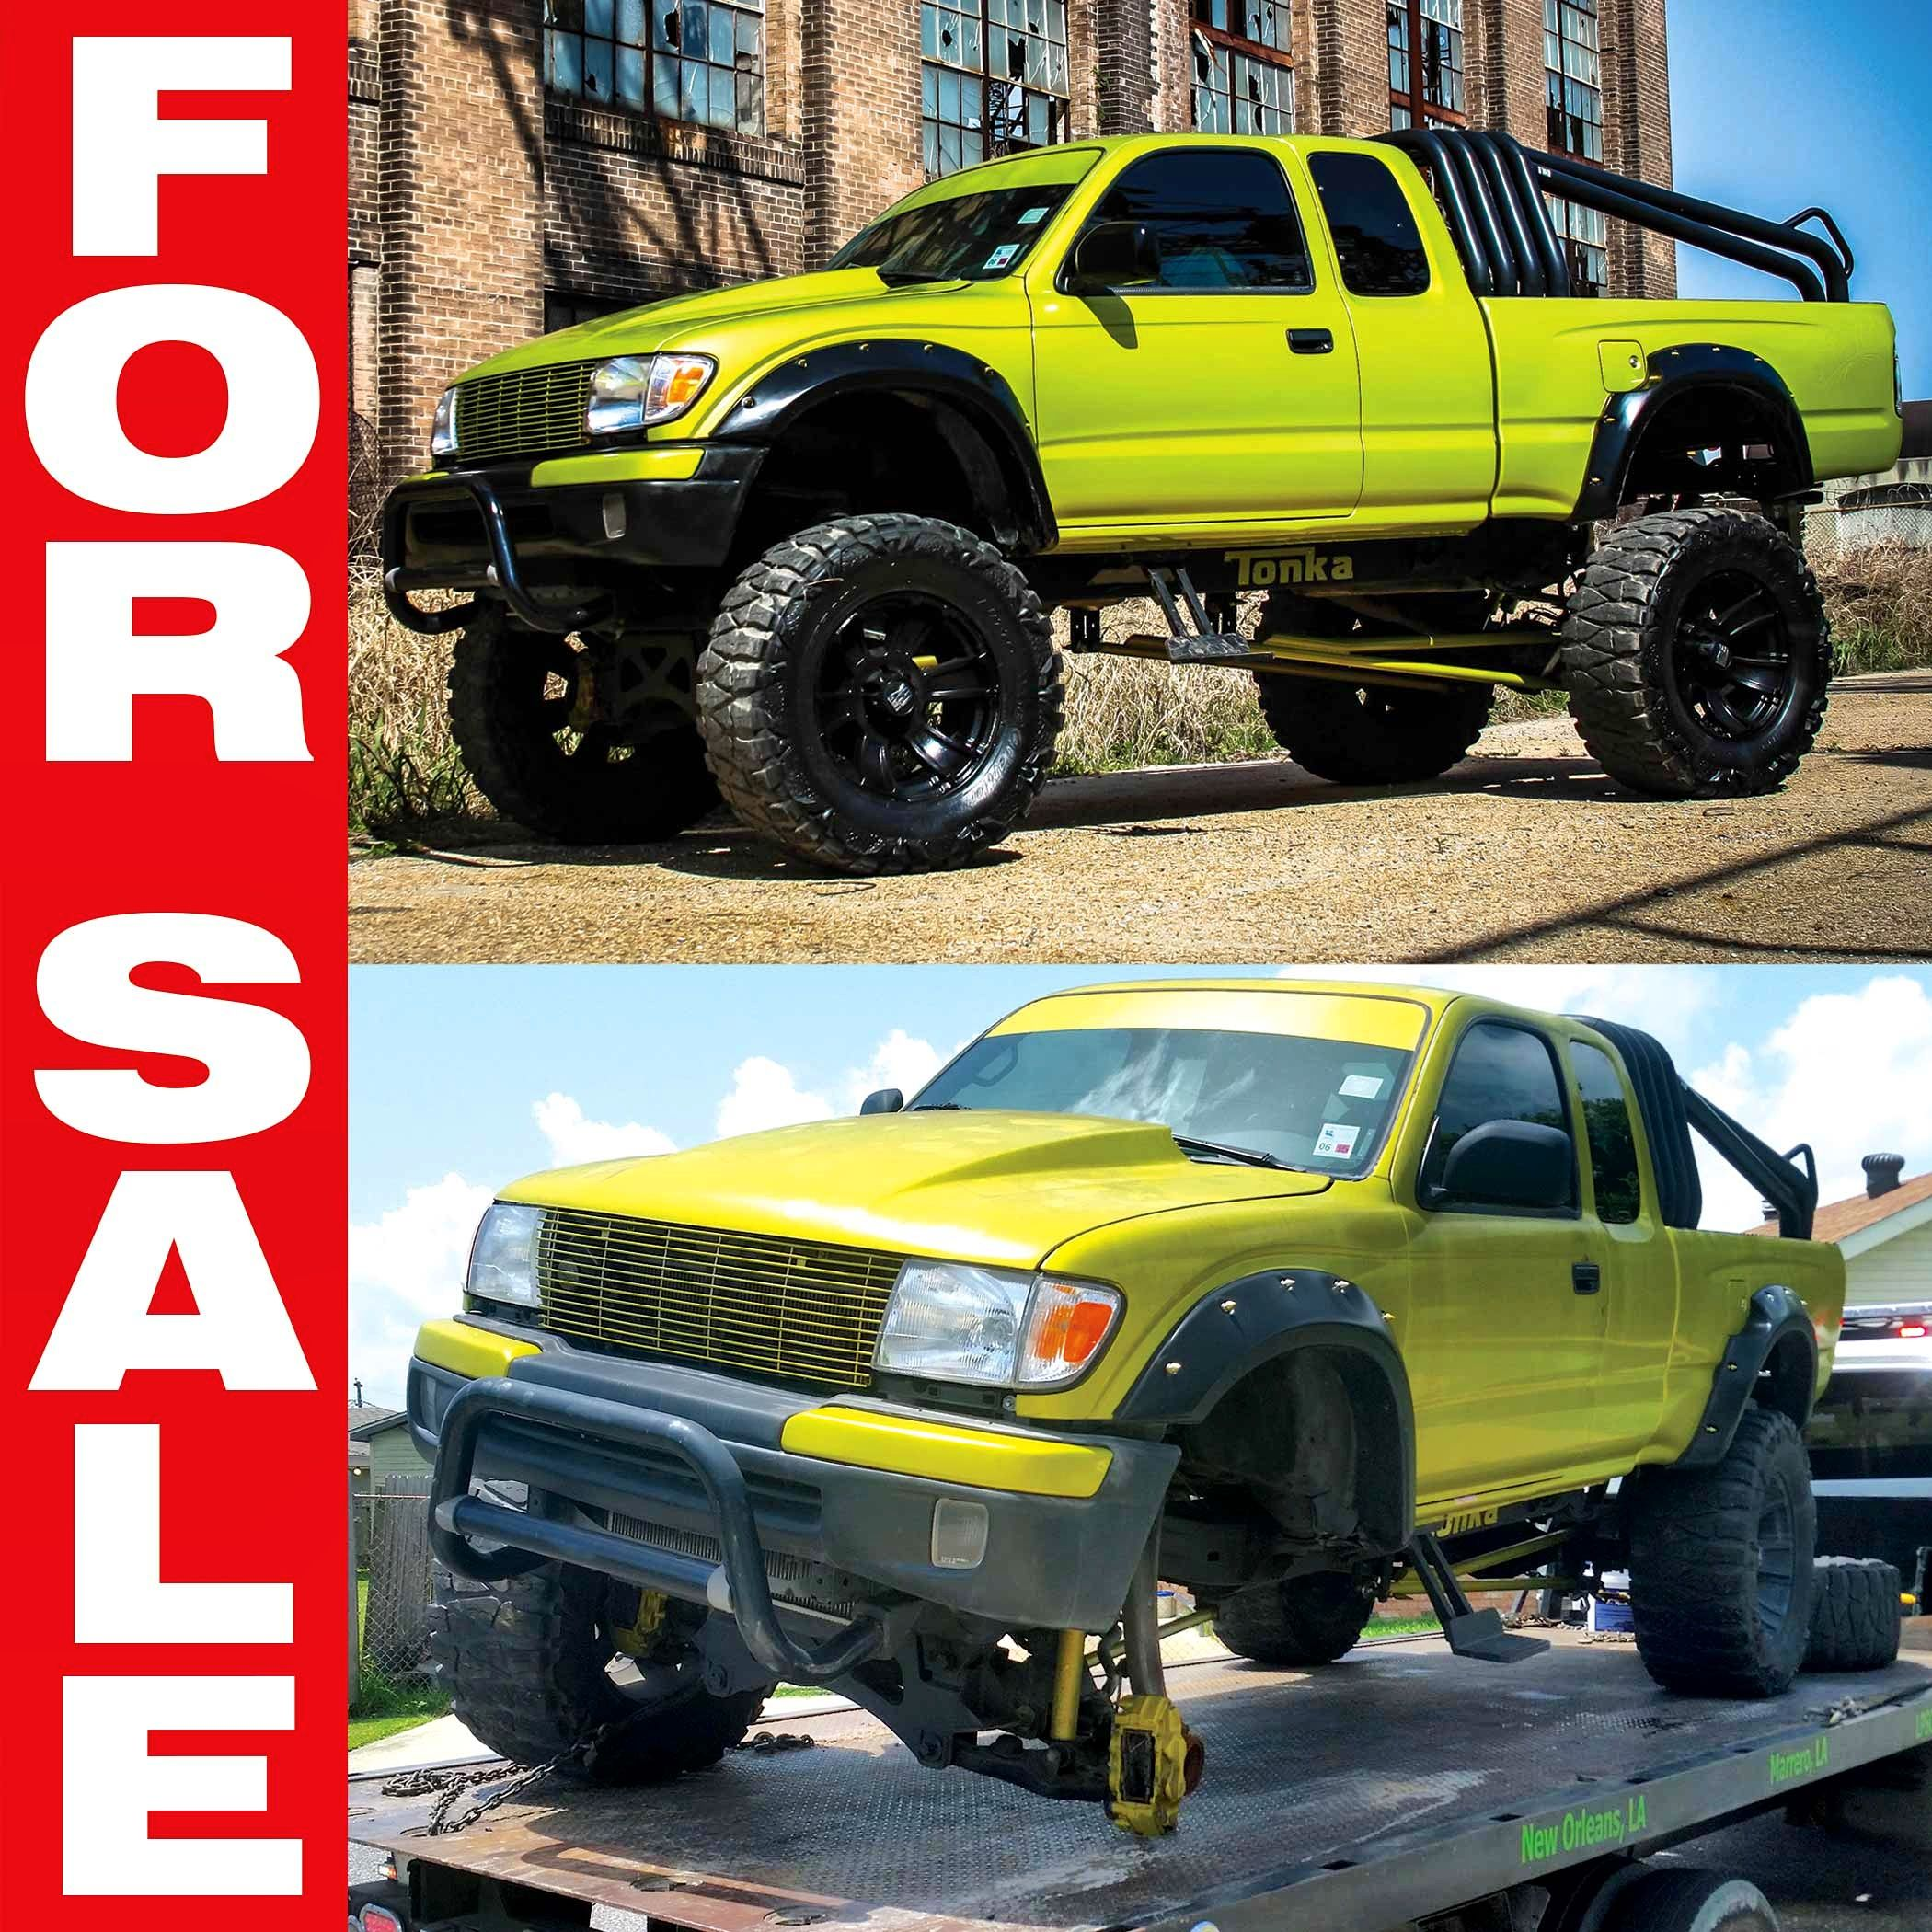 Please Share Repost The Tonka Toy Is For Sale Email Tonkatoy Pgnola Com Or Call 504 324 5469 2000 Toyo Toyota Tacoma Trd 2000 Toyota Tacoma Tacoma Trd